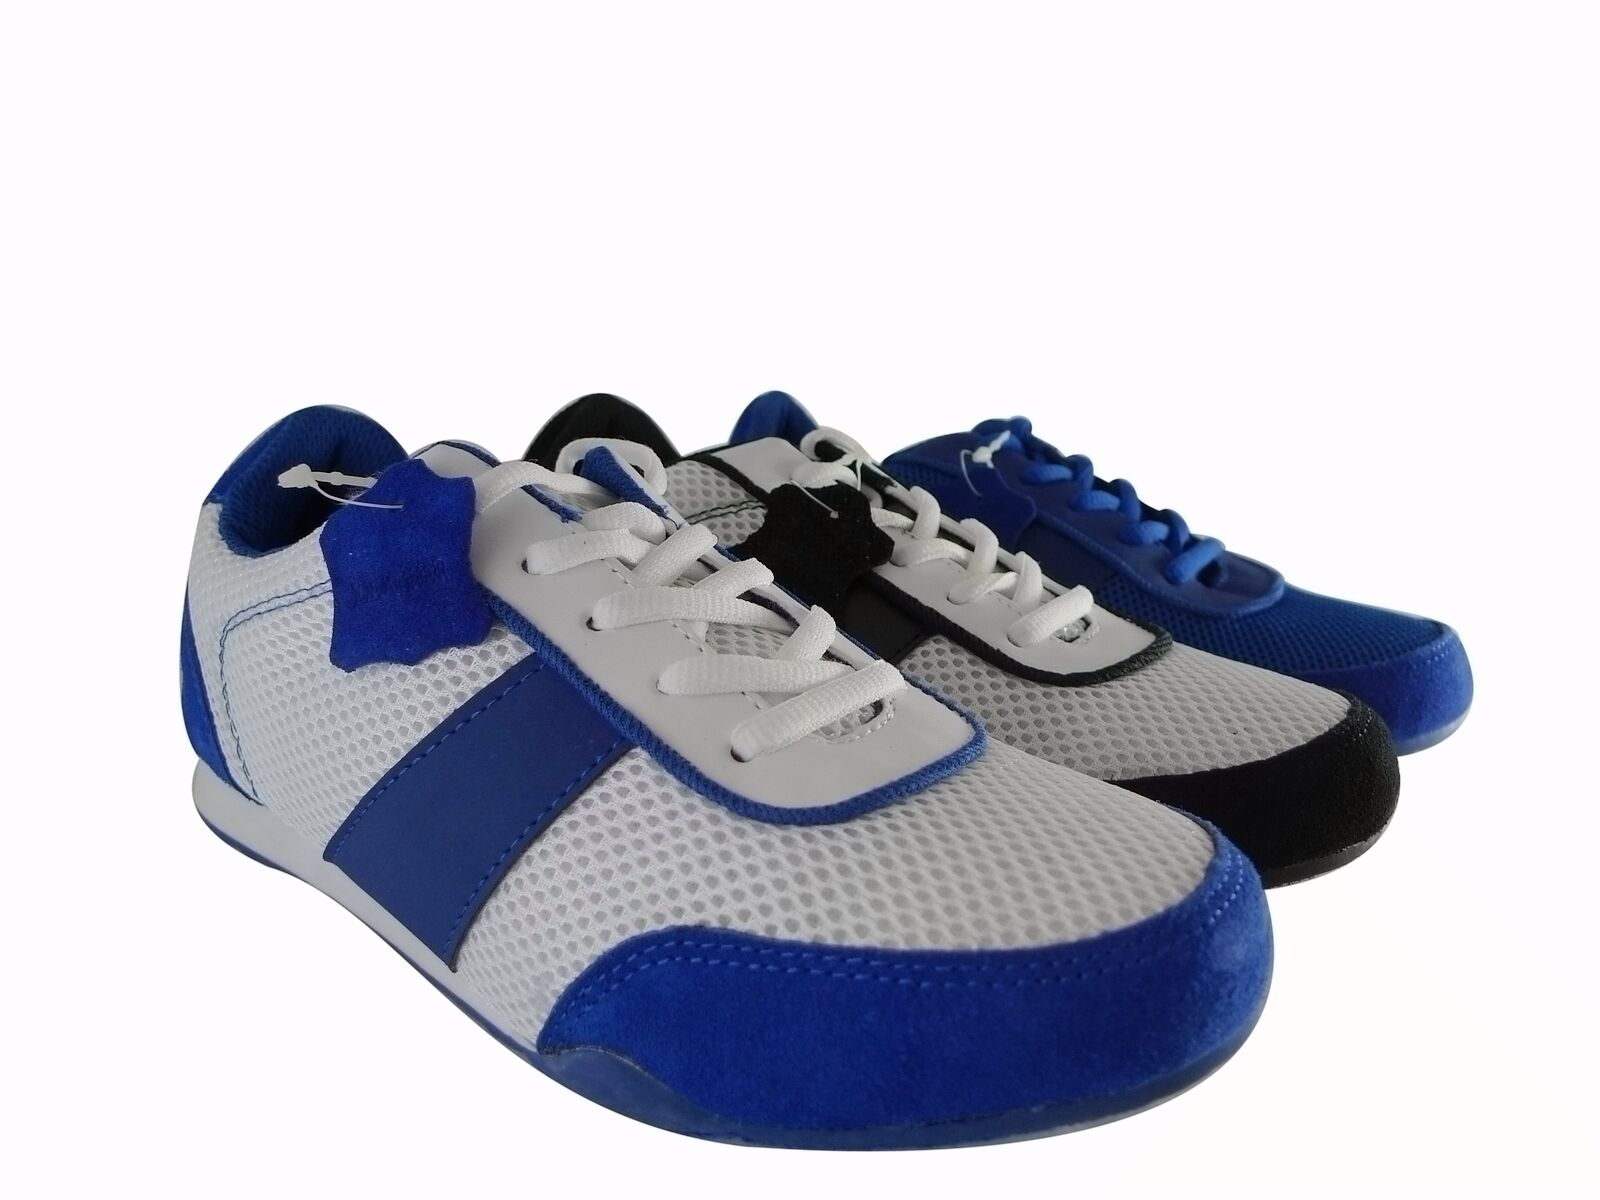 athletic light weight tennis shoes comfortable